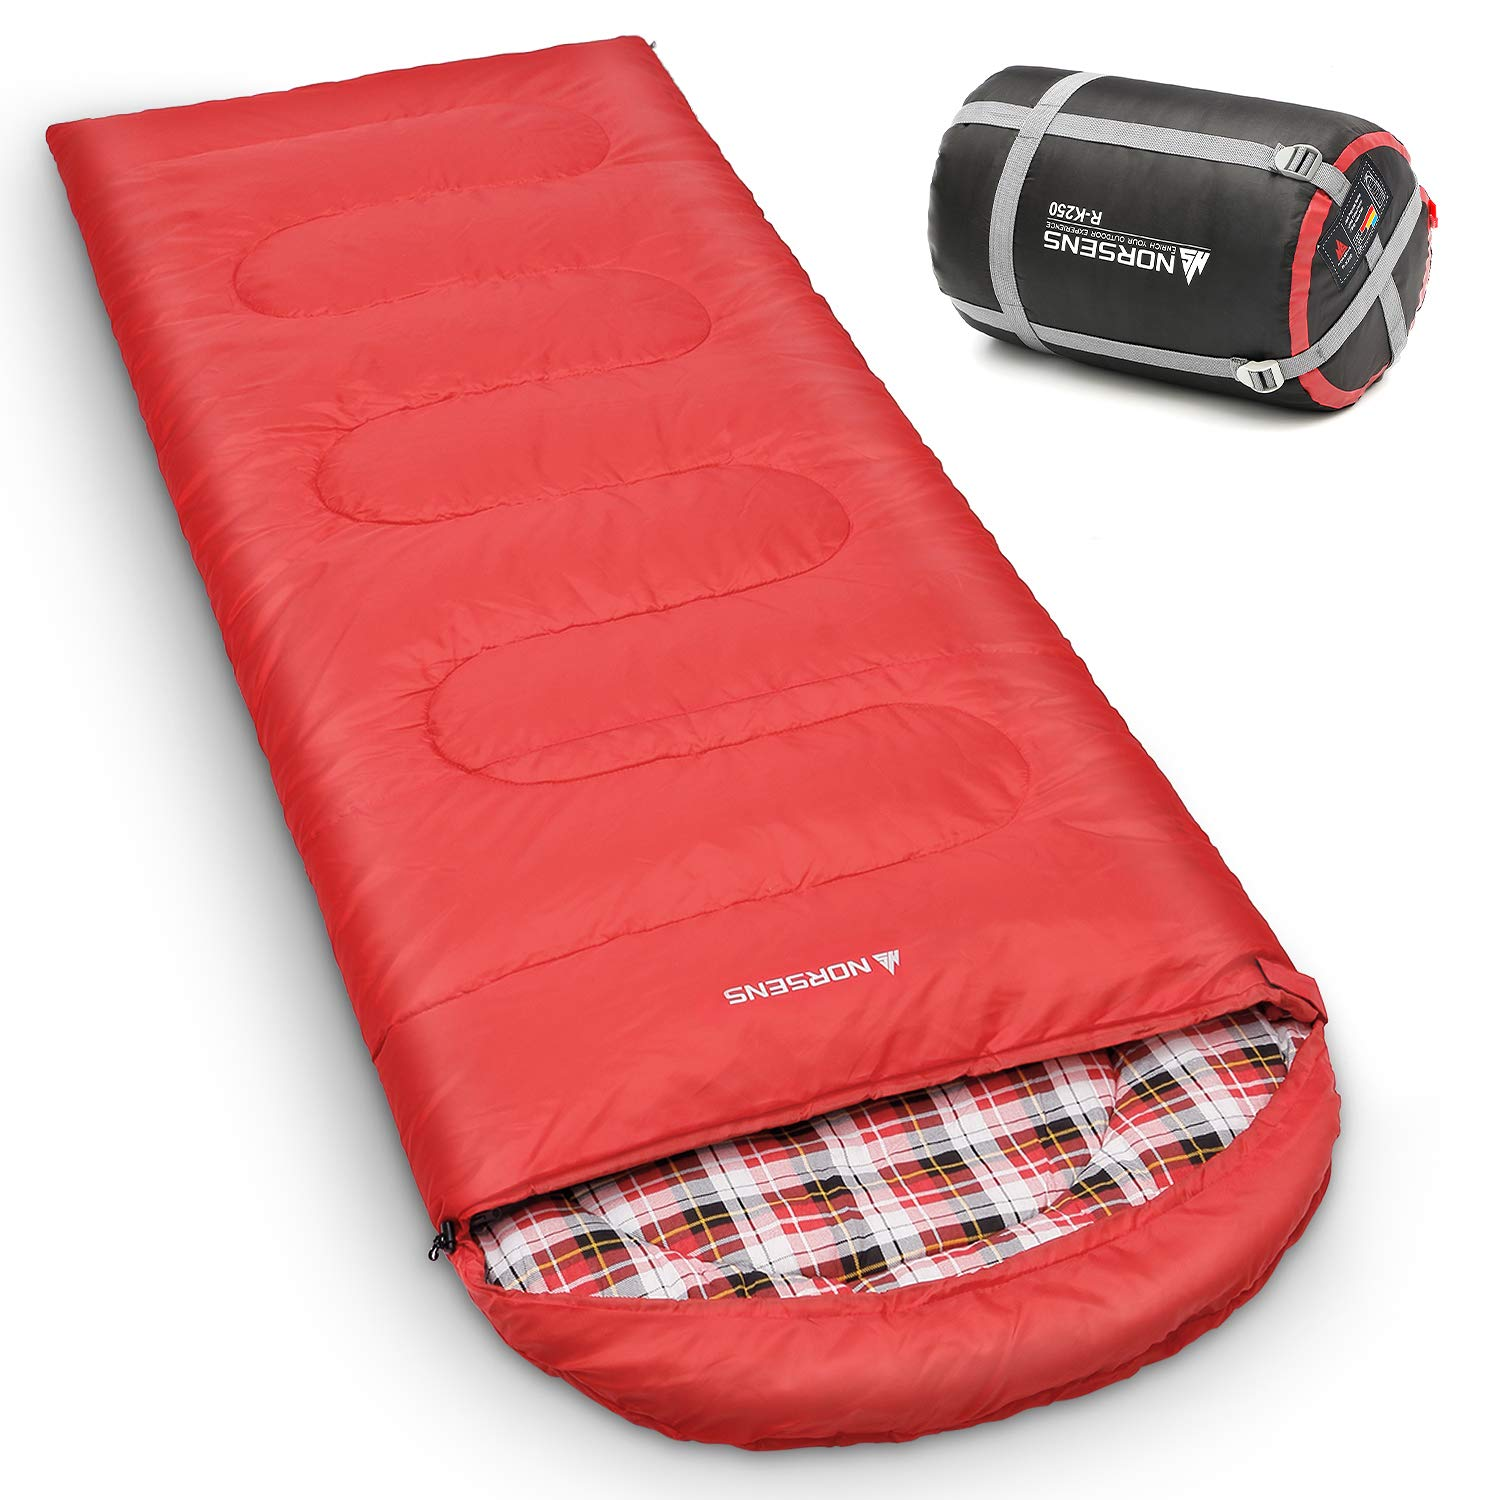 NORSENS 0 Degree Celsius Cold Weather Sleeping Bag for Camping, Backpacking, Hiking. Large Outdoor Compact Sleeping Bags with Compression Sack for Adults. 90.5 x 32.6 inch (5.red with 4.6lbs Filling) by NORSENS